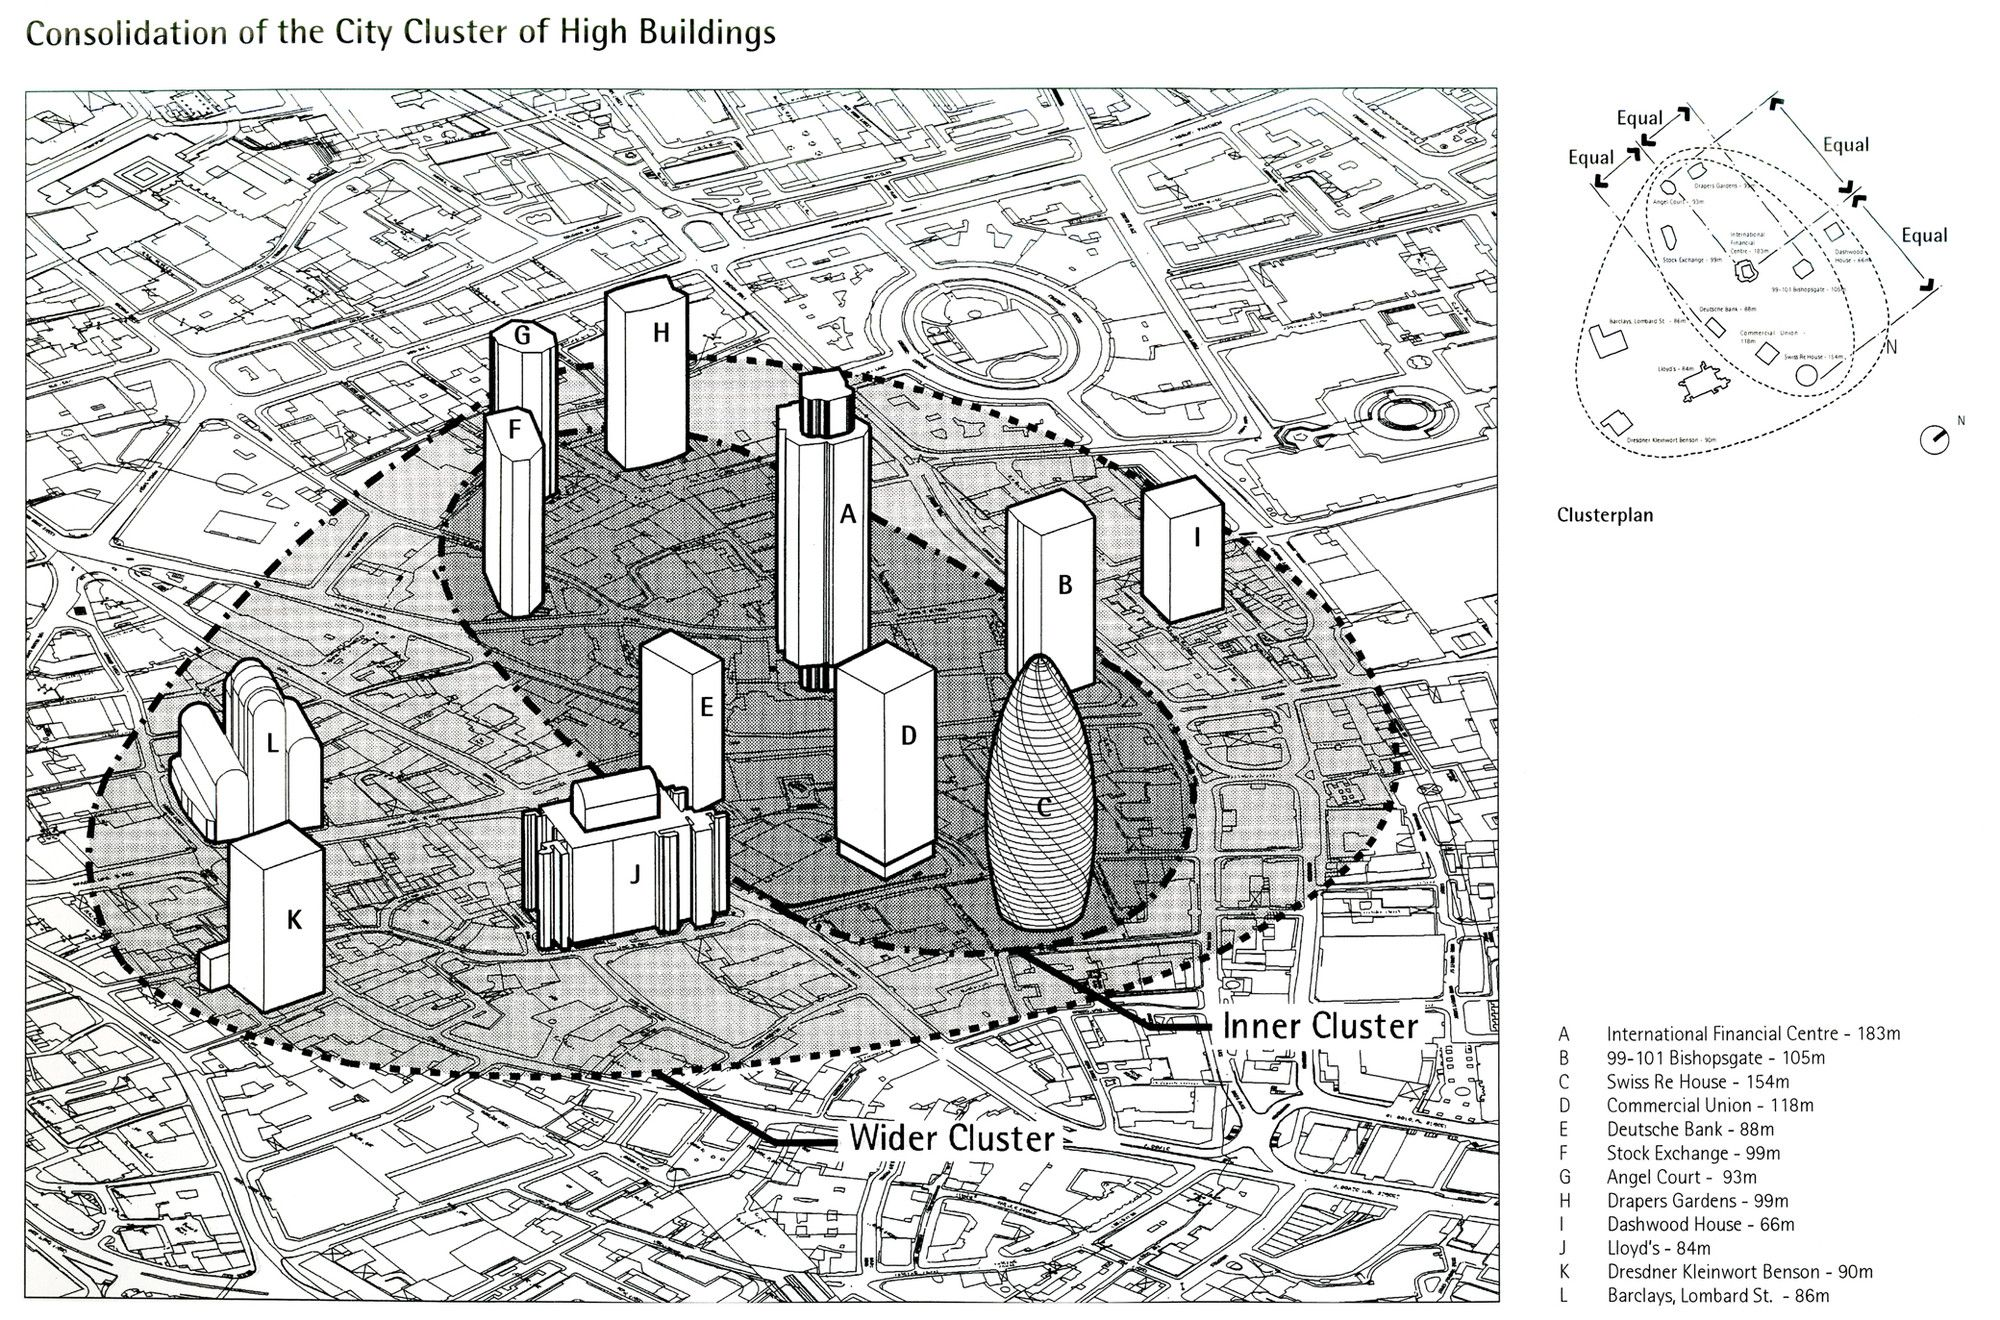 Gallery Of The Gherkin How London S Famous Tower Leveraged Risk And Became An Icon Part 4 7 Architecture Drawings Tower London Landmarks